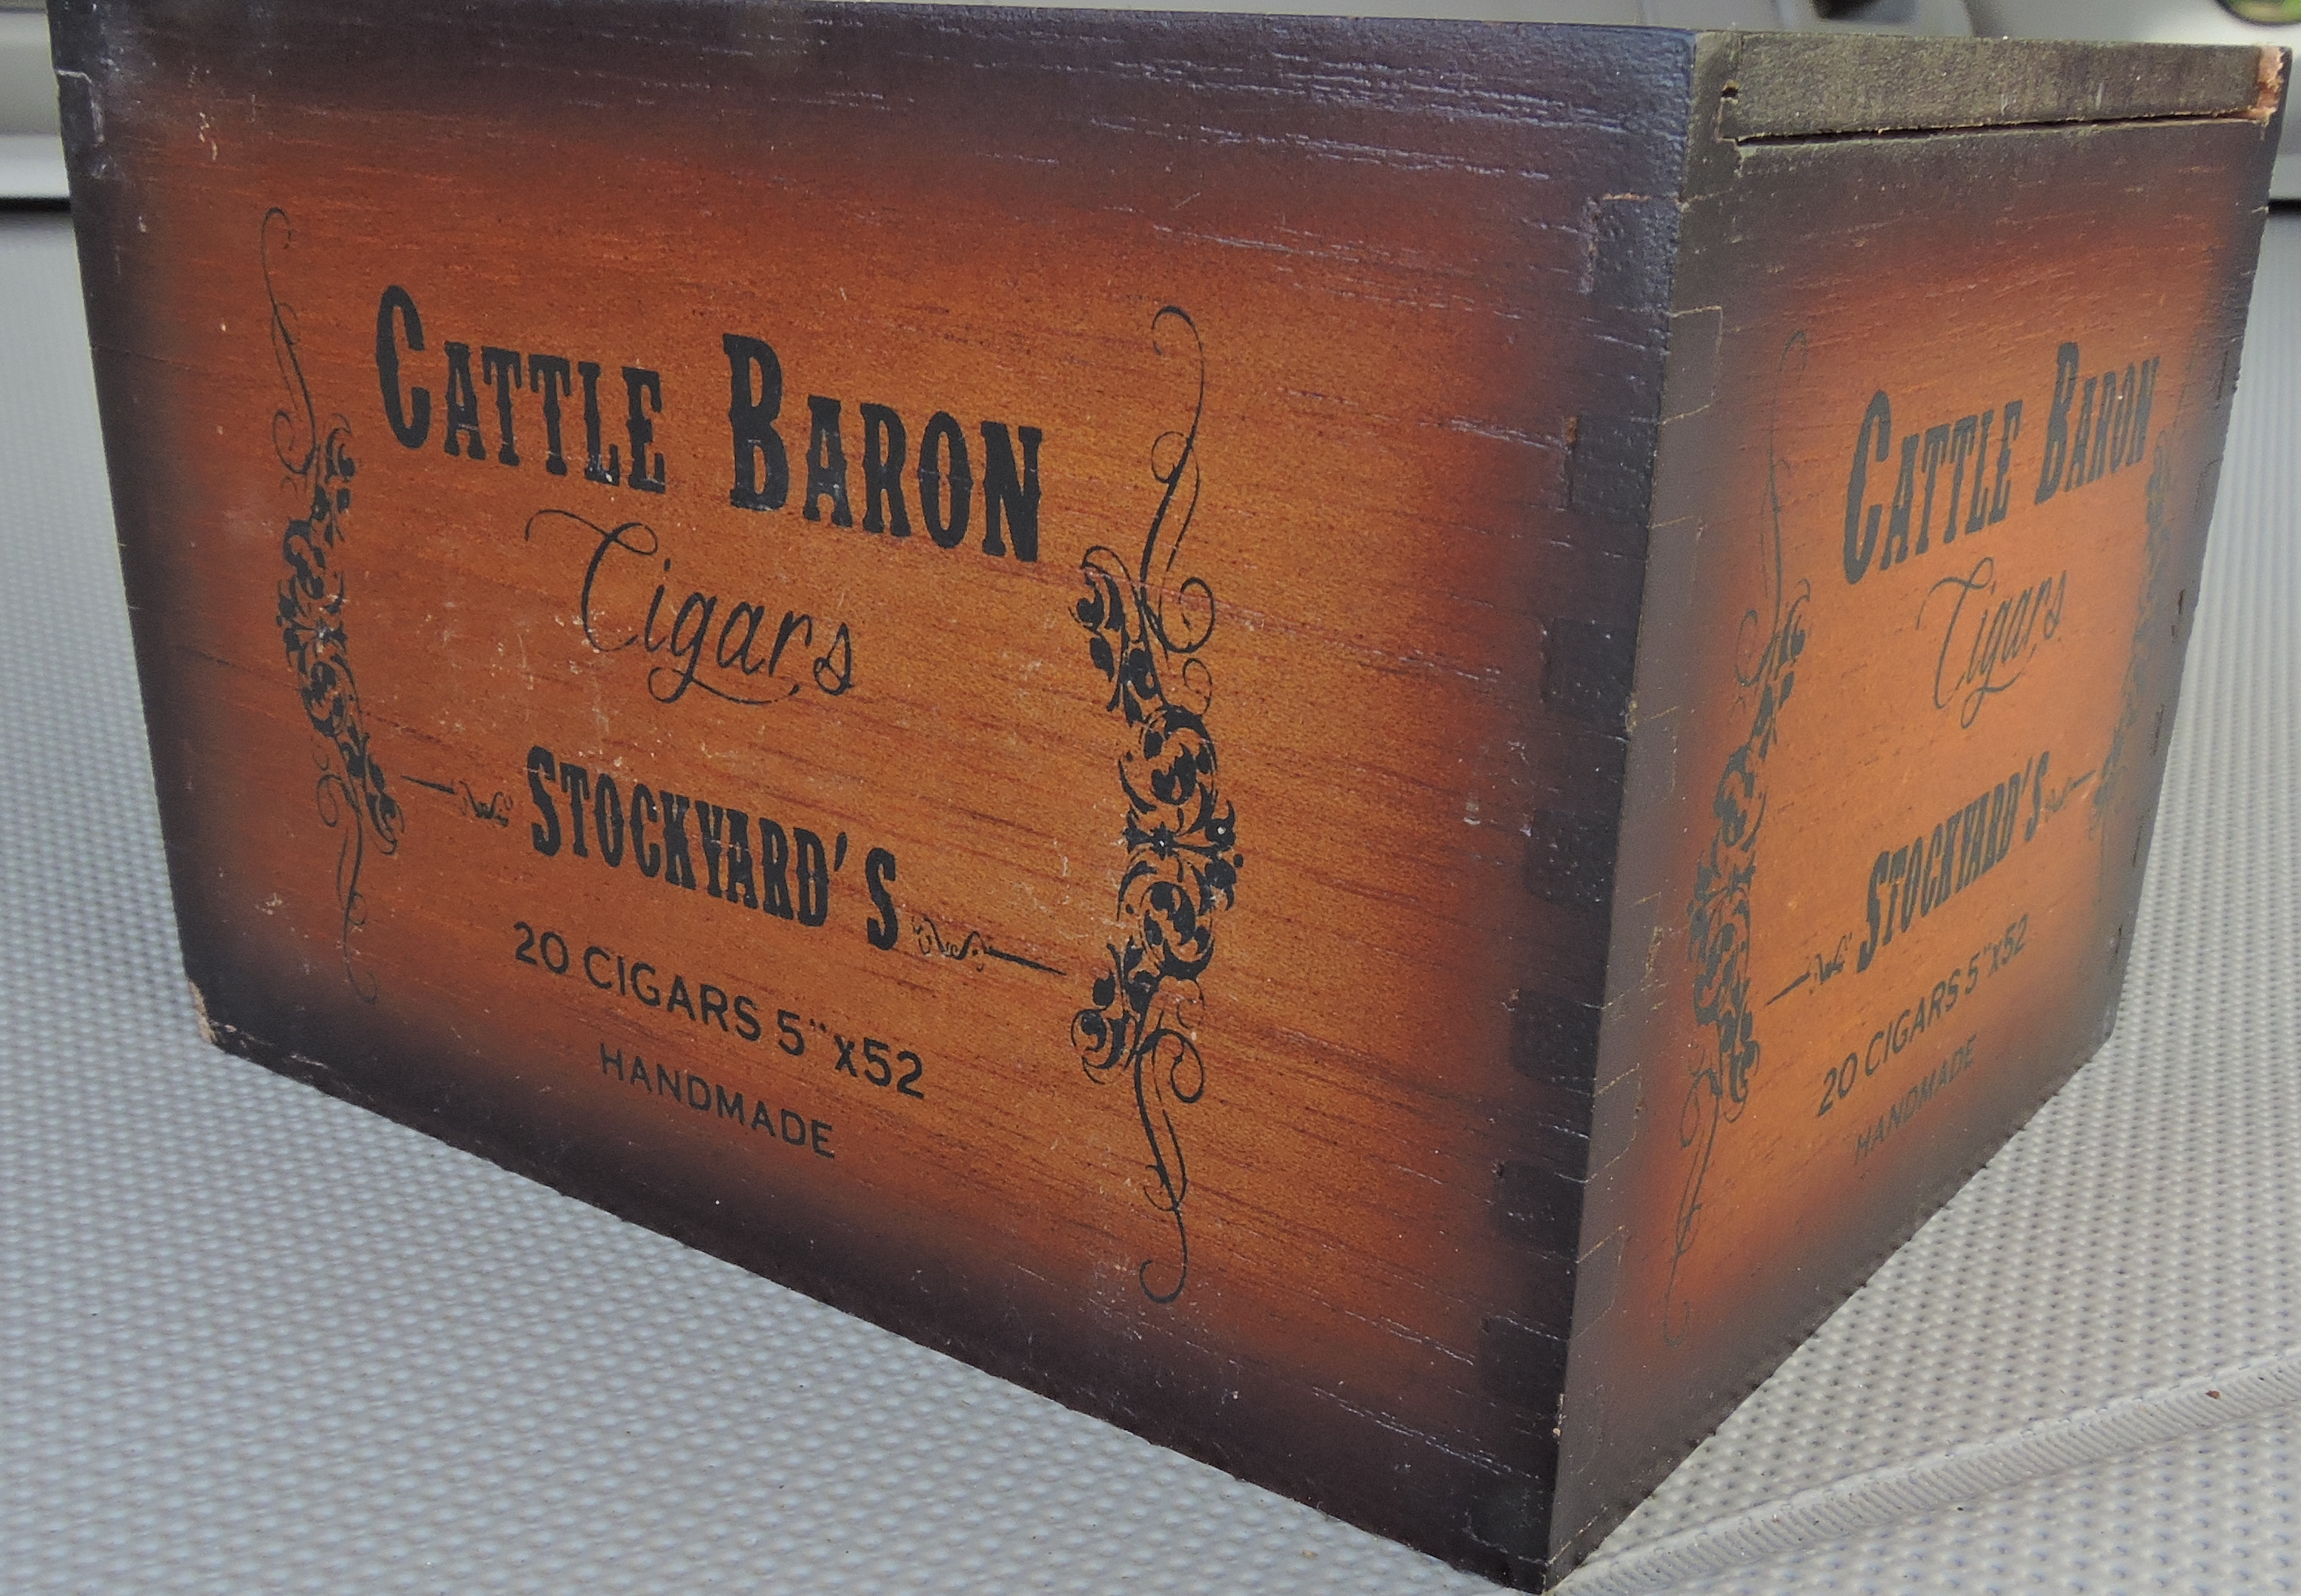 Cattle_Baron_Stockyard's_Box-2